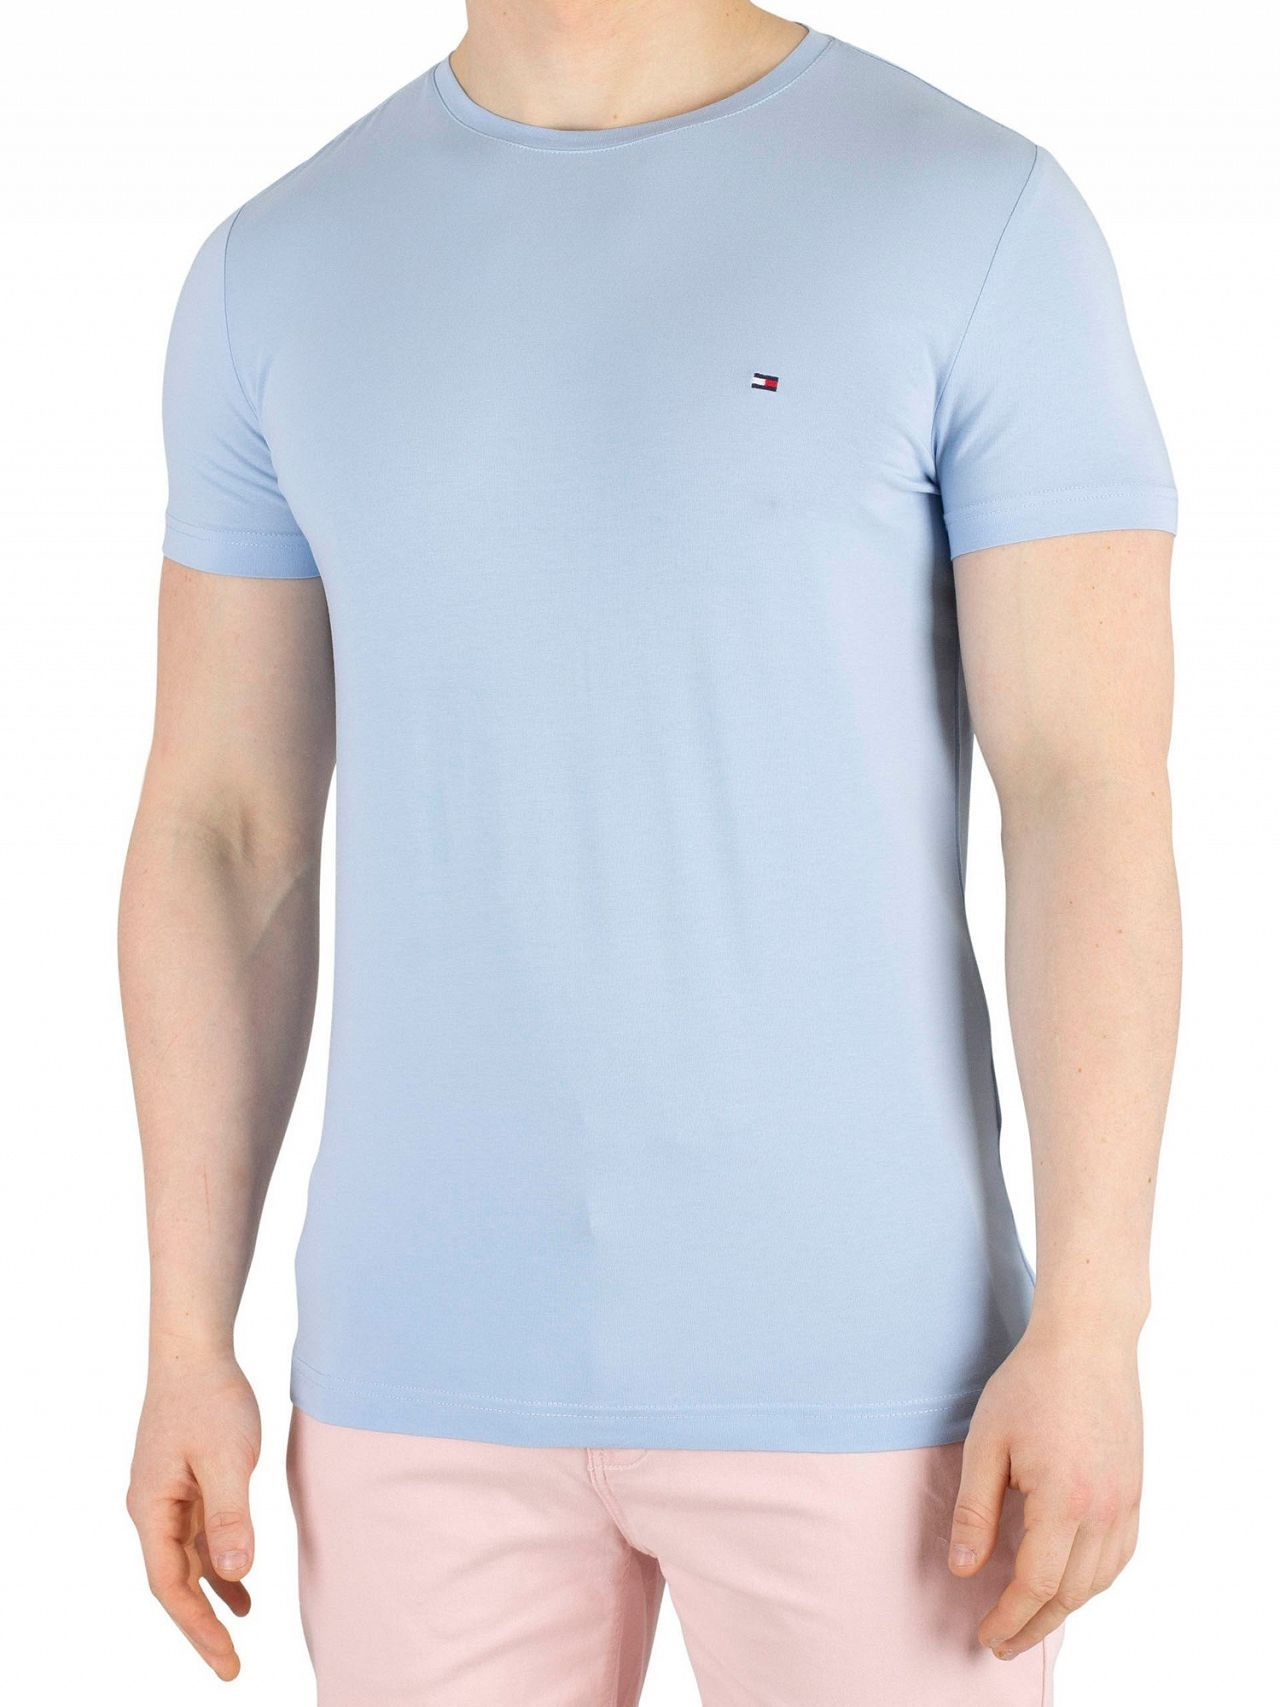 80f341db Tommy Hilfiger Chambray Blue Stretch Slim Fit T-Shirt. Tap to expand